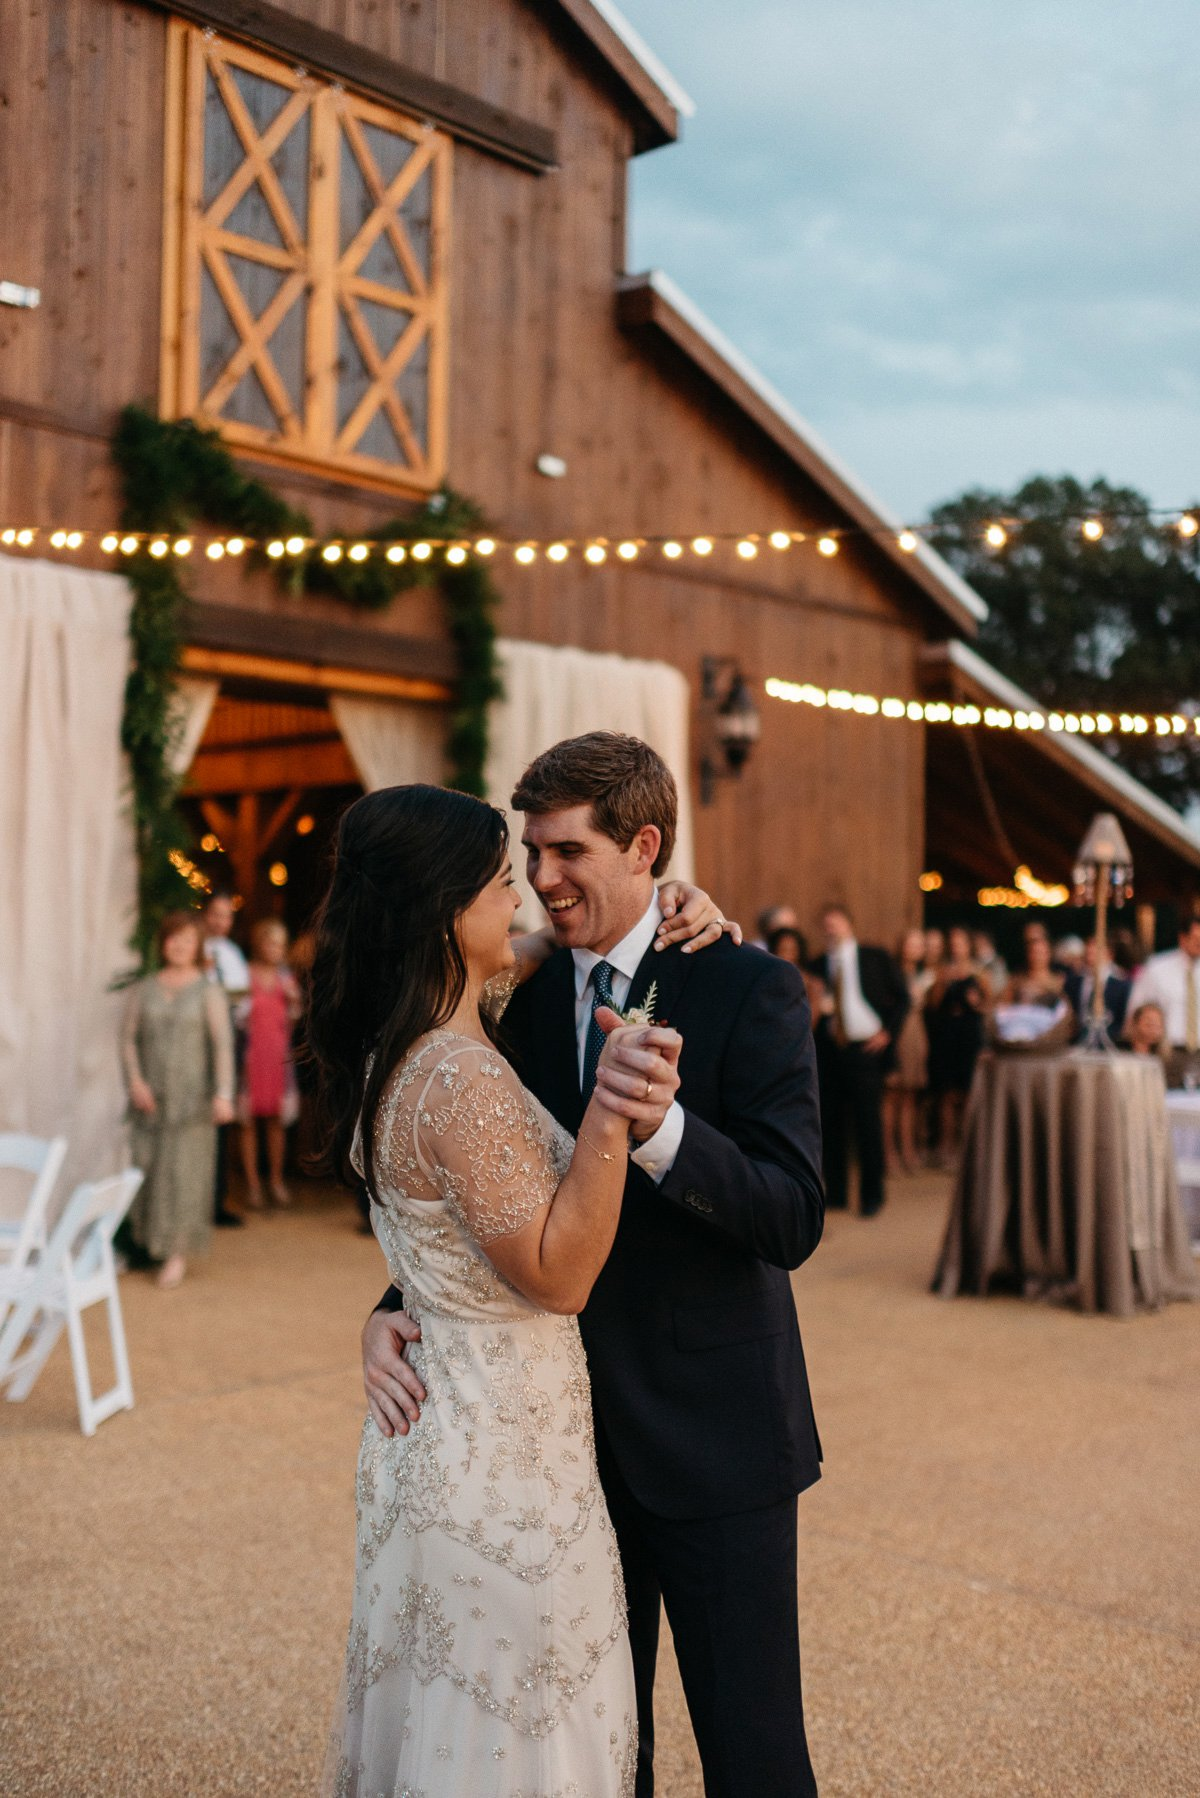 wedding outdoor reception at southwind venue, mississippi wedding photography